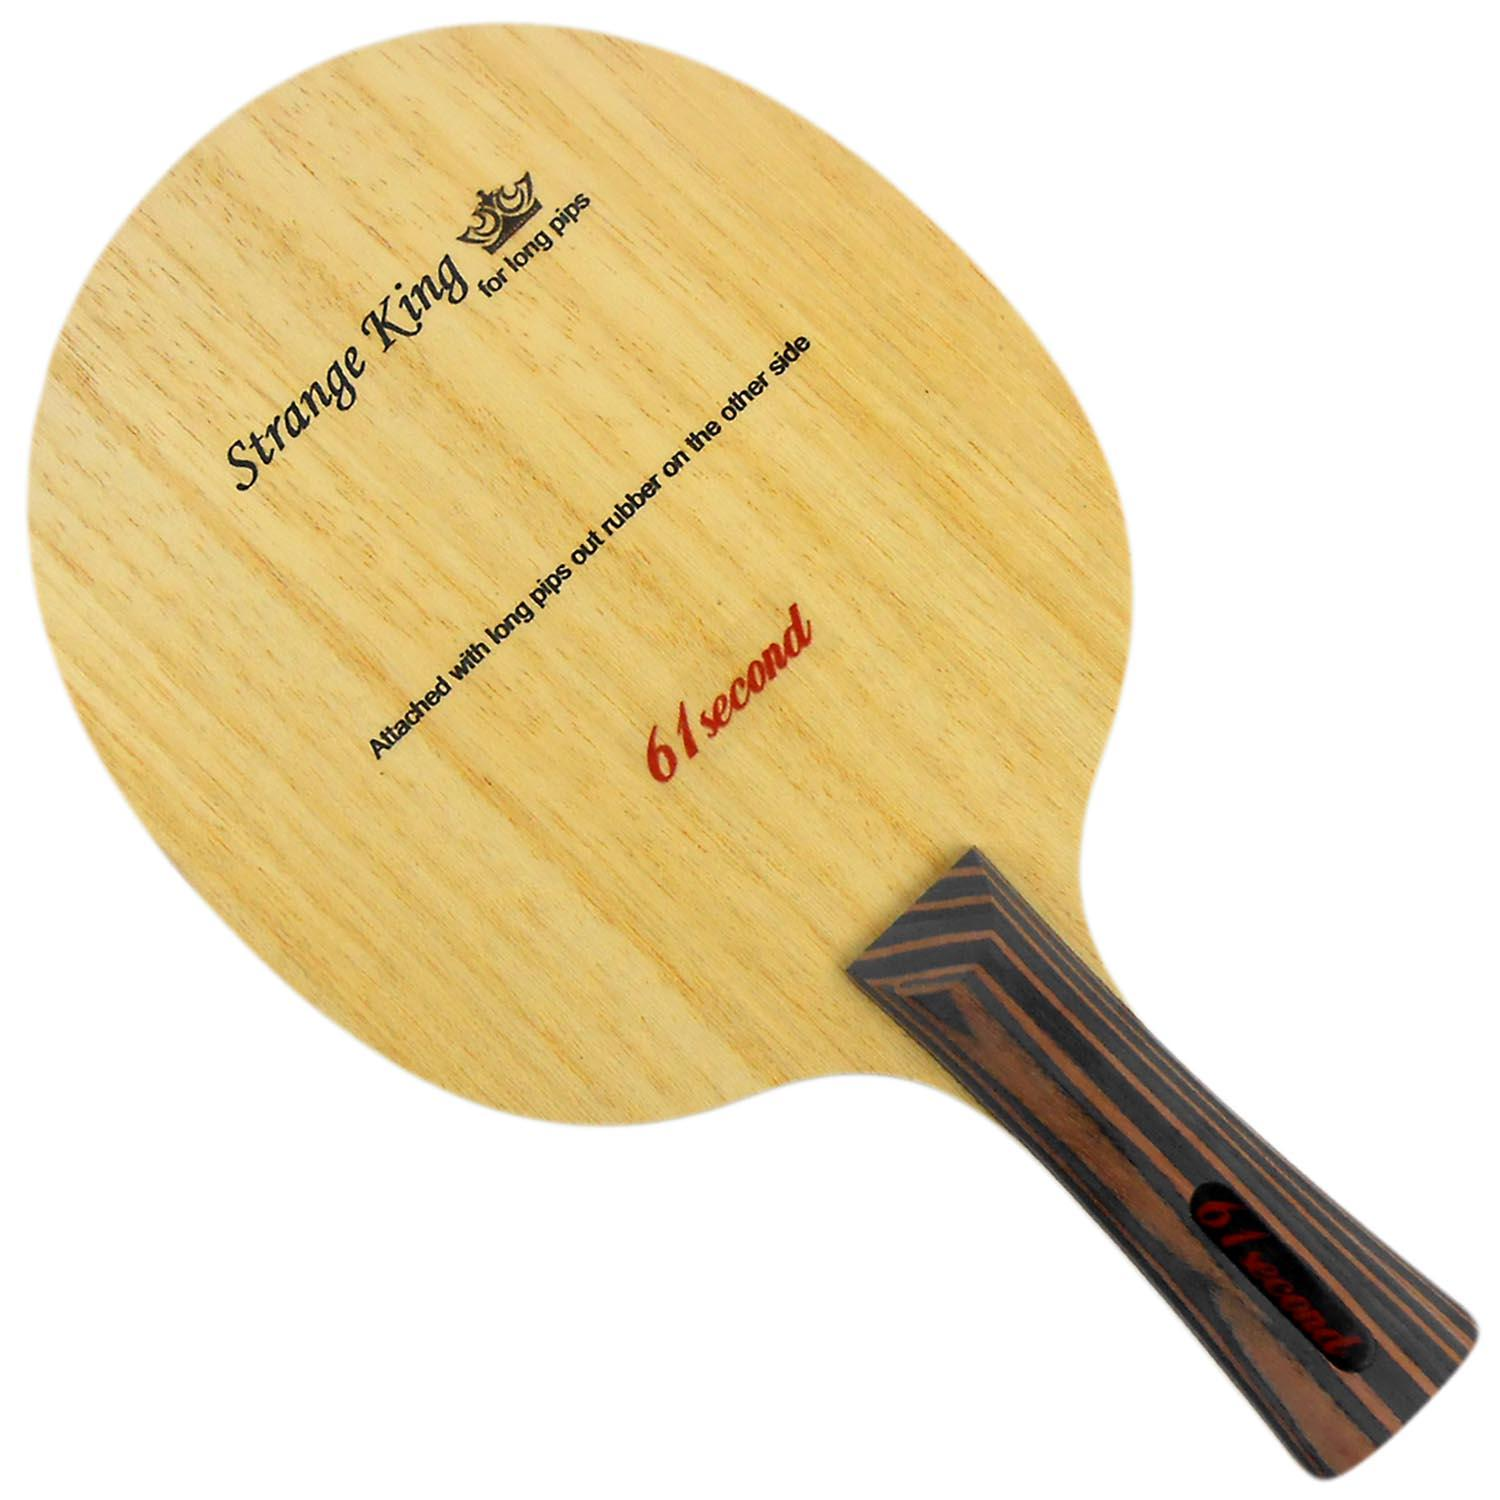 61second Strange King Shakehand Table Tennis Ping Pong Blade 61second Table  Tennis Ping Pong Online with  63 8 Piece on Ak1588 s Store   DHgate com. 61second Strange King Shakehand Table Tennis Ping Pong Blade